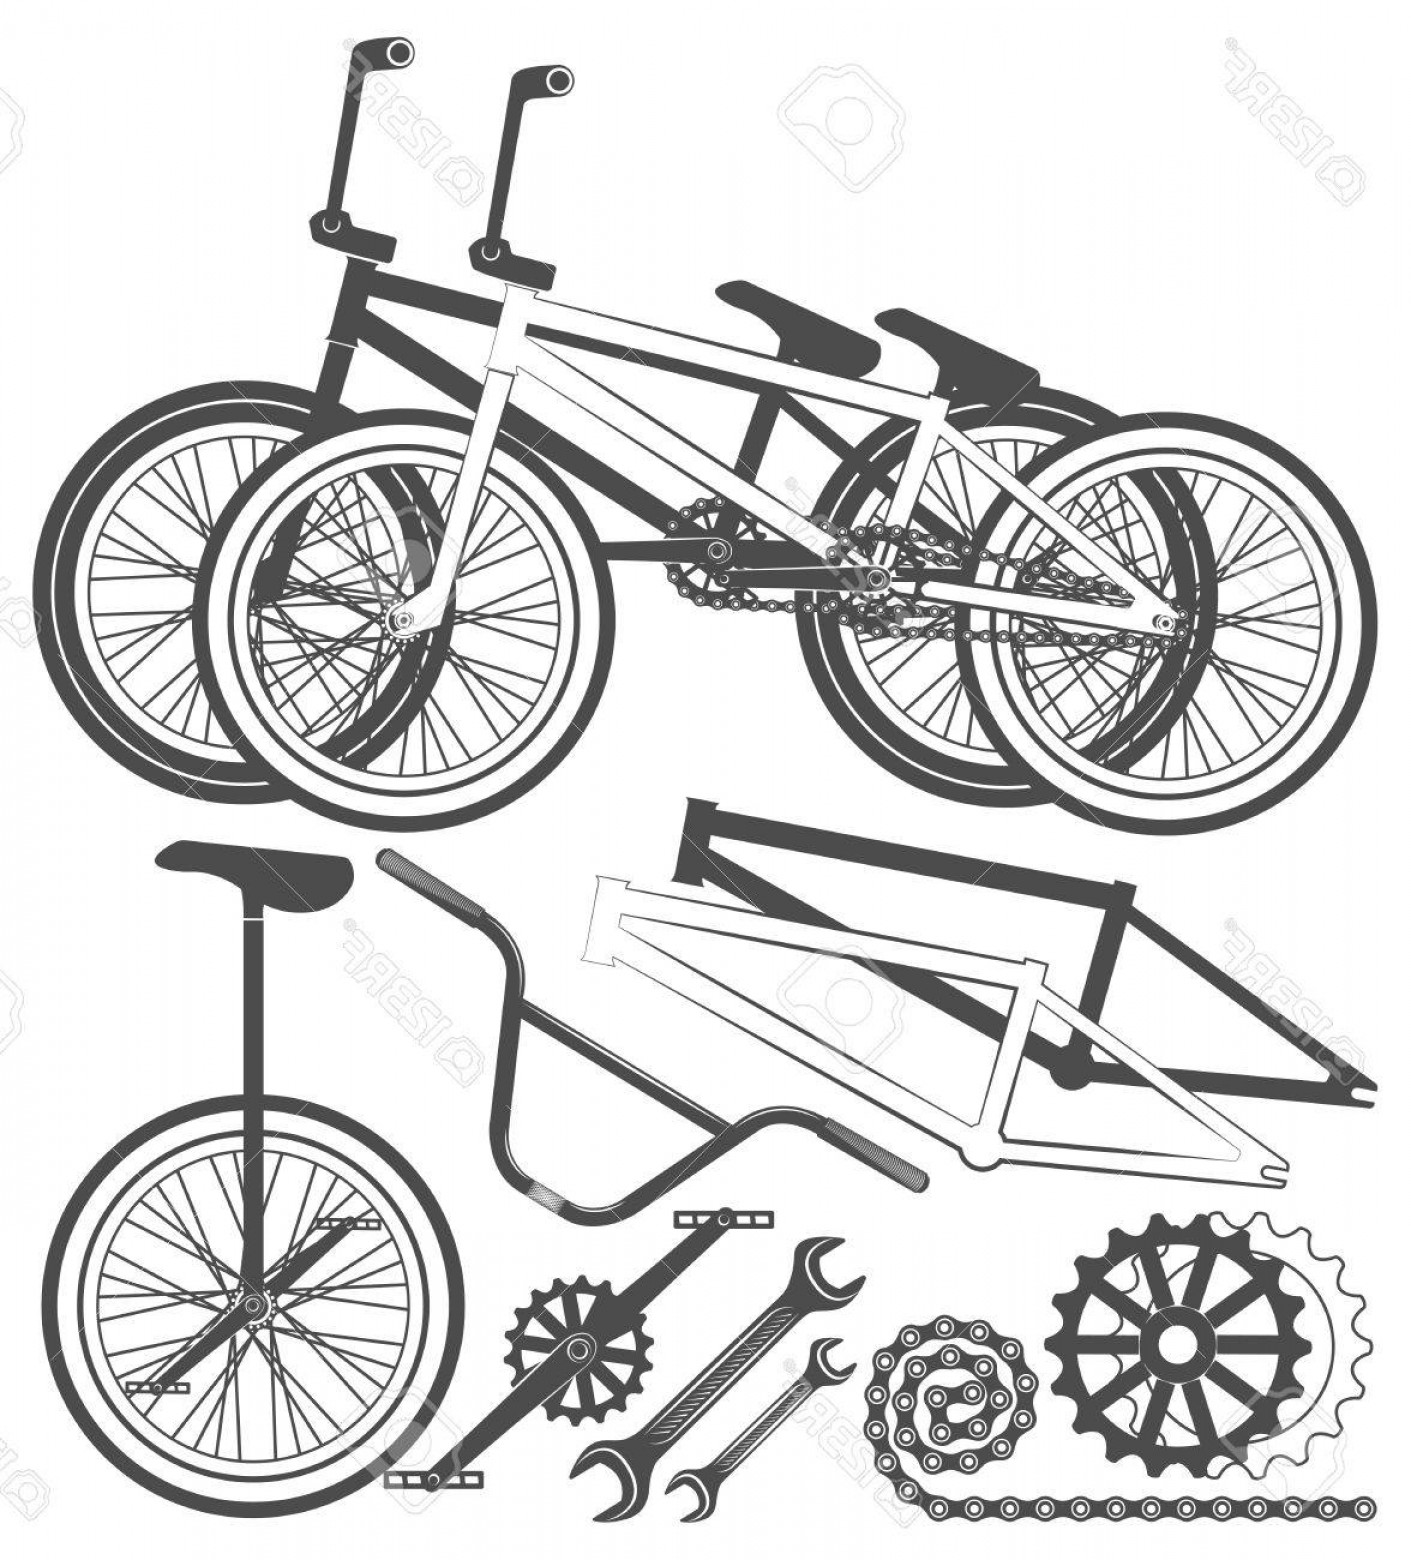 BMX Bike Tire Vector: Photostock Vector Set Of Bmx Bike Elements Bicycle Parts Wheel Chain Unicycle